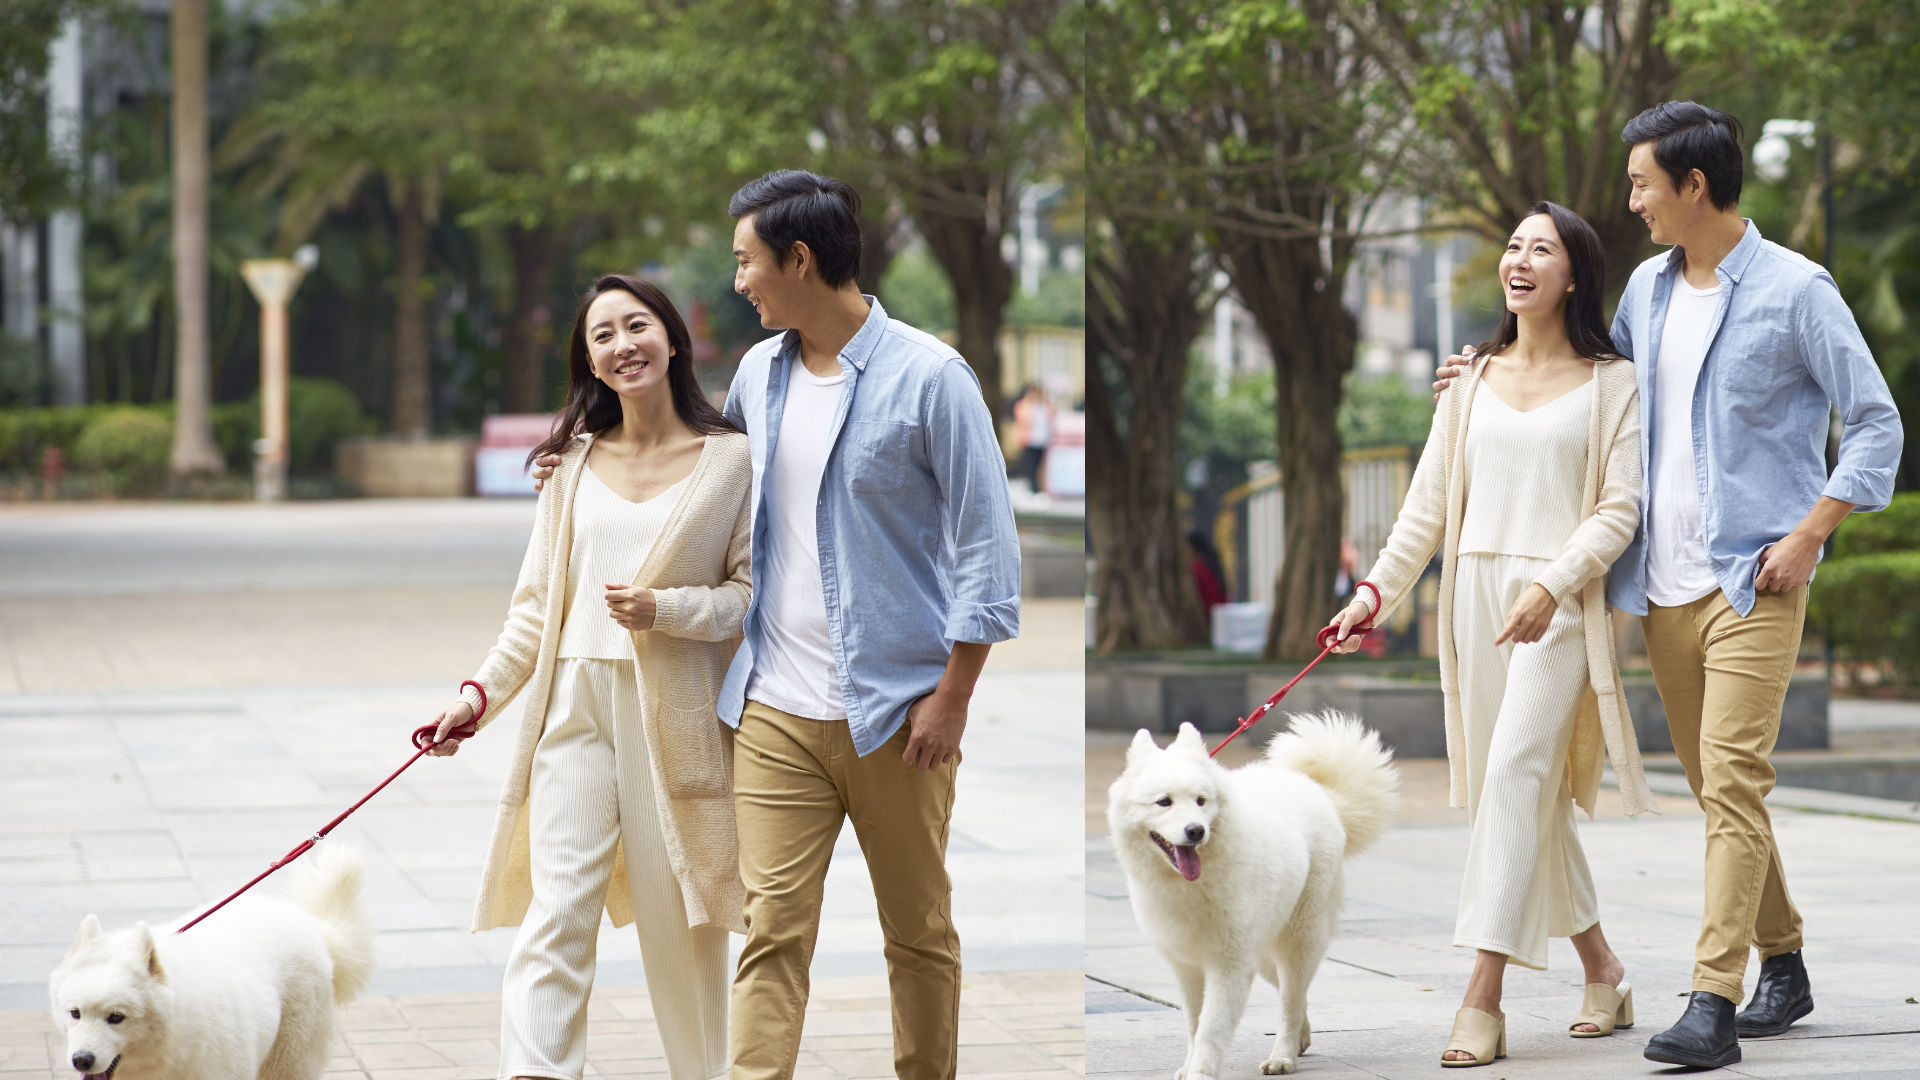 When she is attracted to you again, use the dog to do something romantic